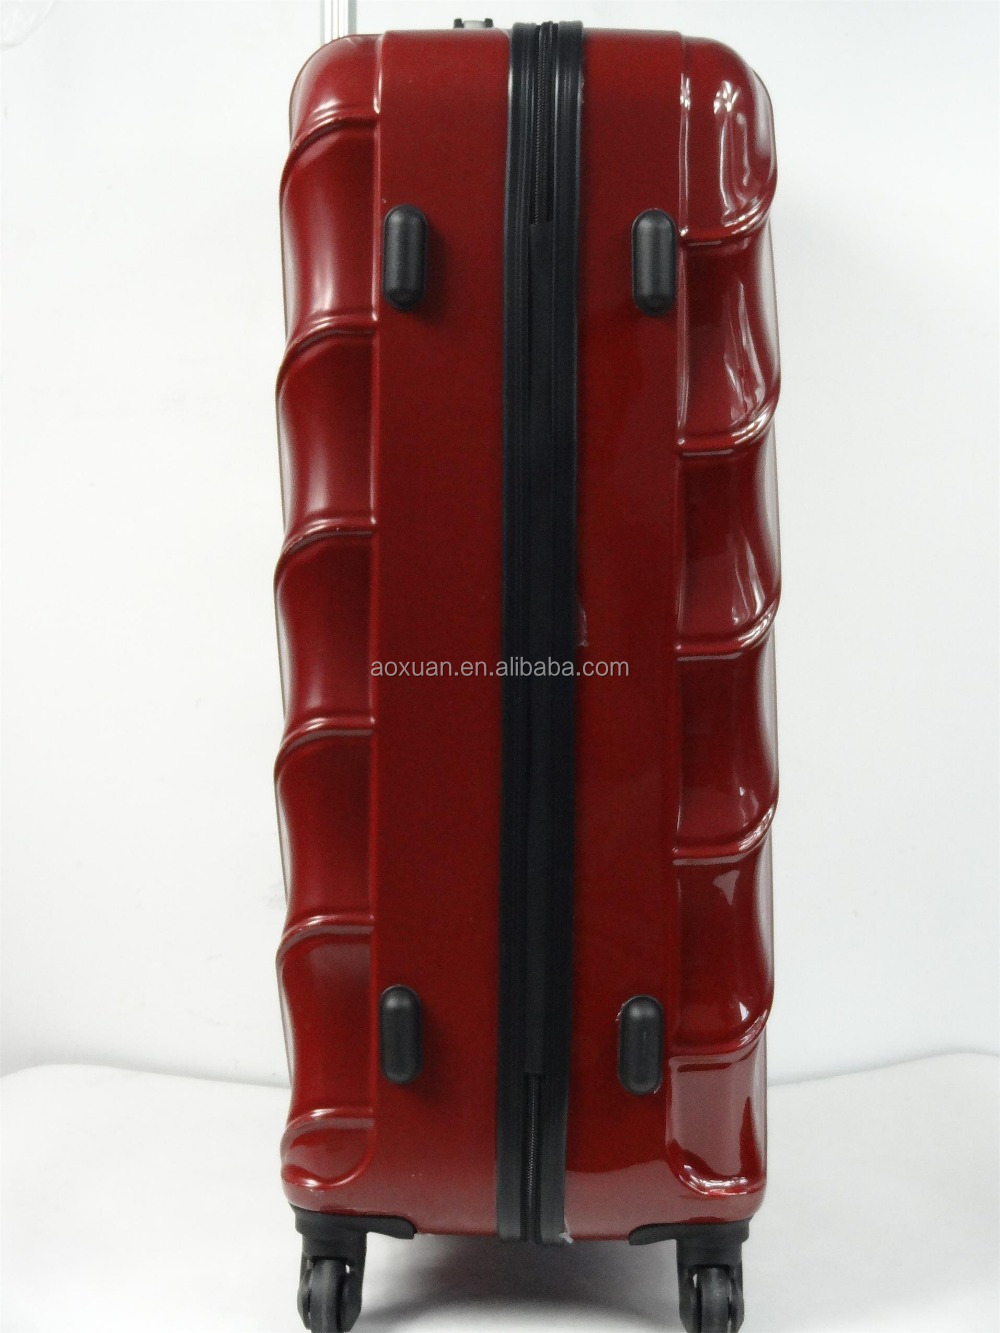 travel time trolley bag 2013 new design fashion luggage travel bags luggage ABS/PC trolley luggage